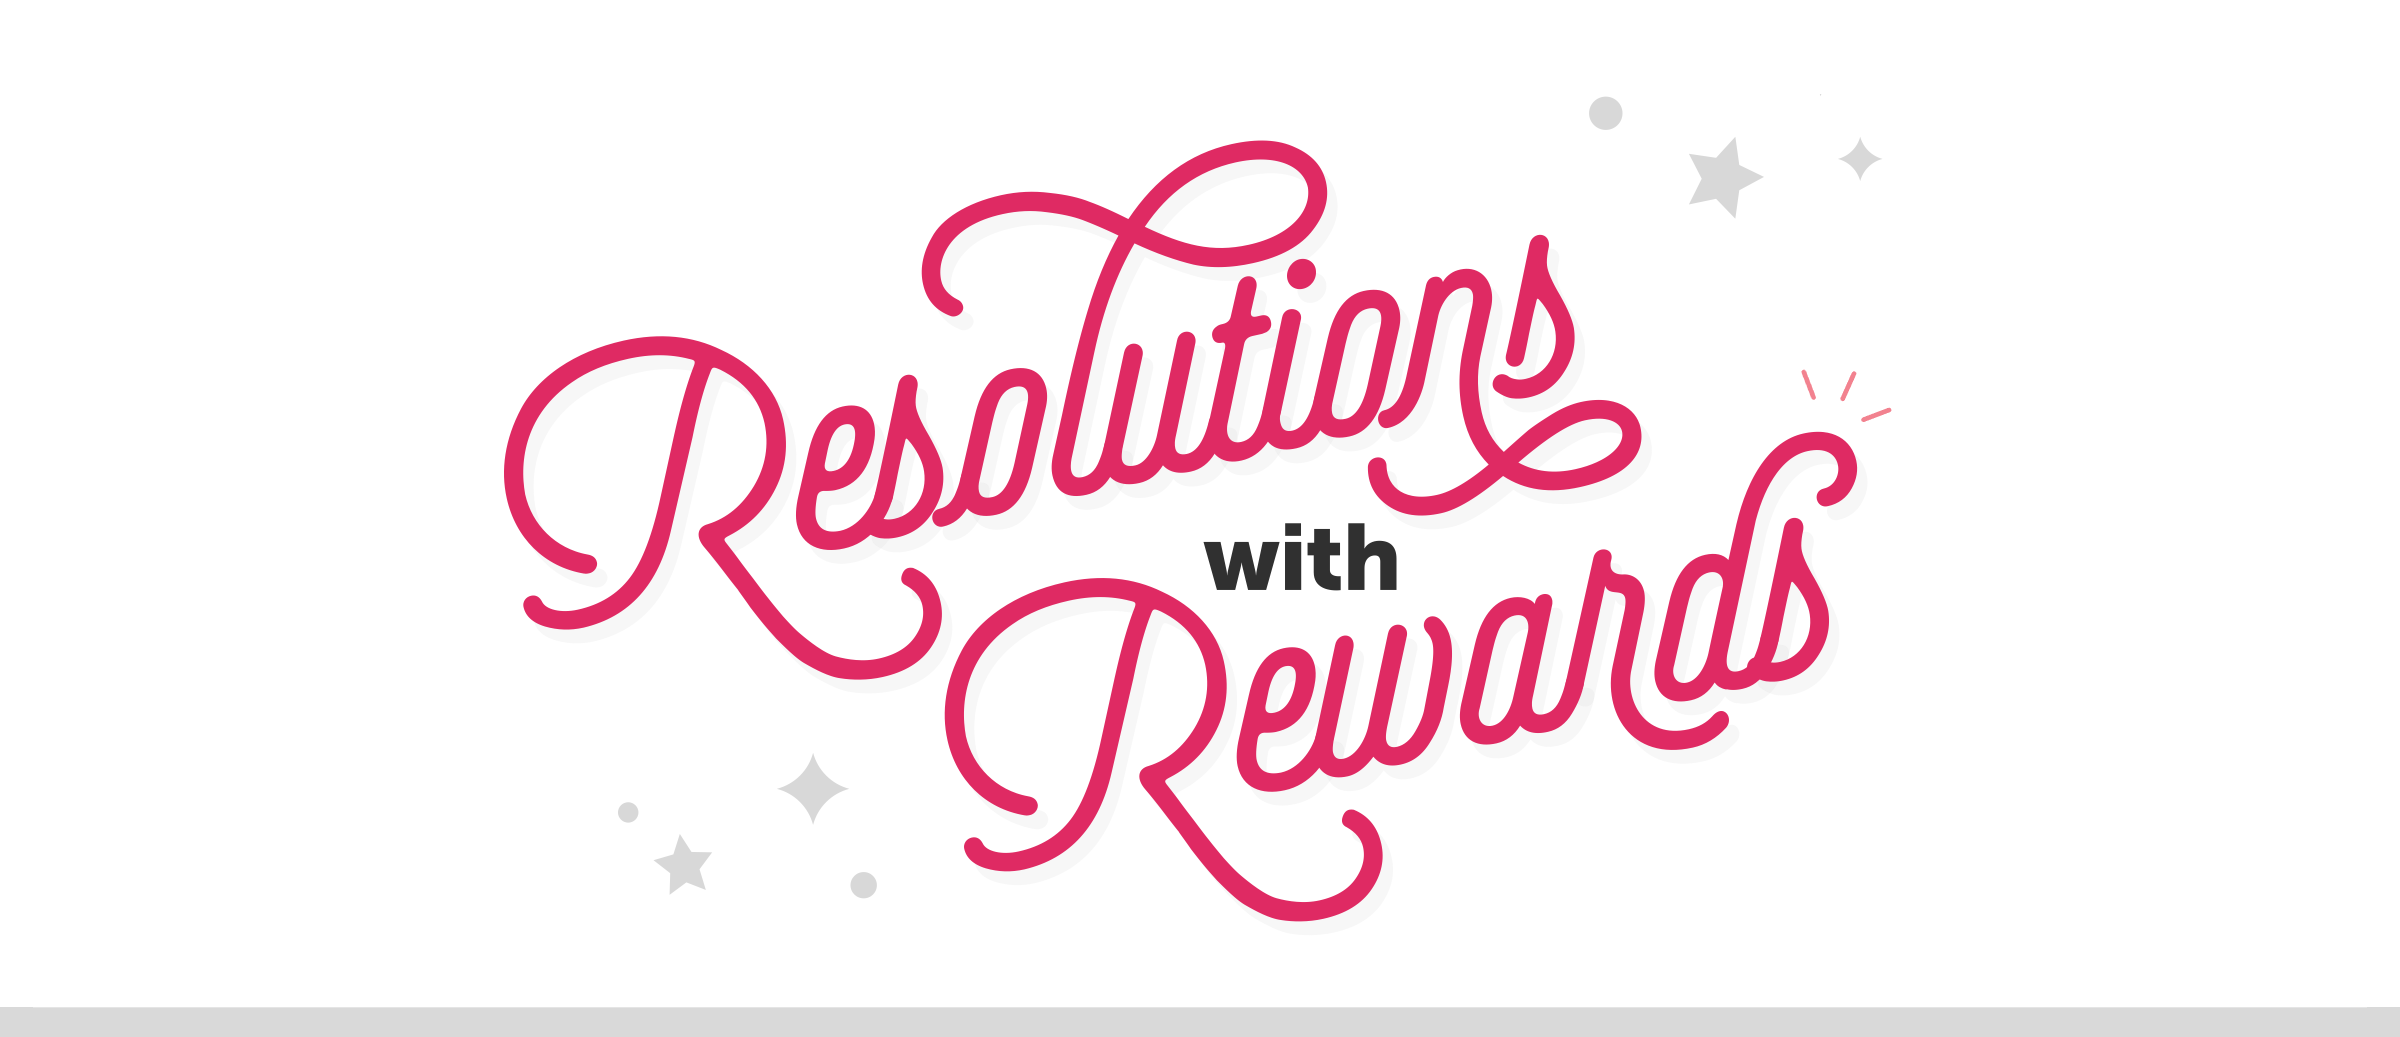 Resolutions with Rewards